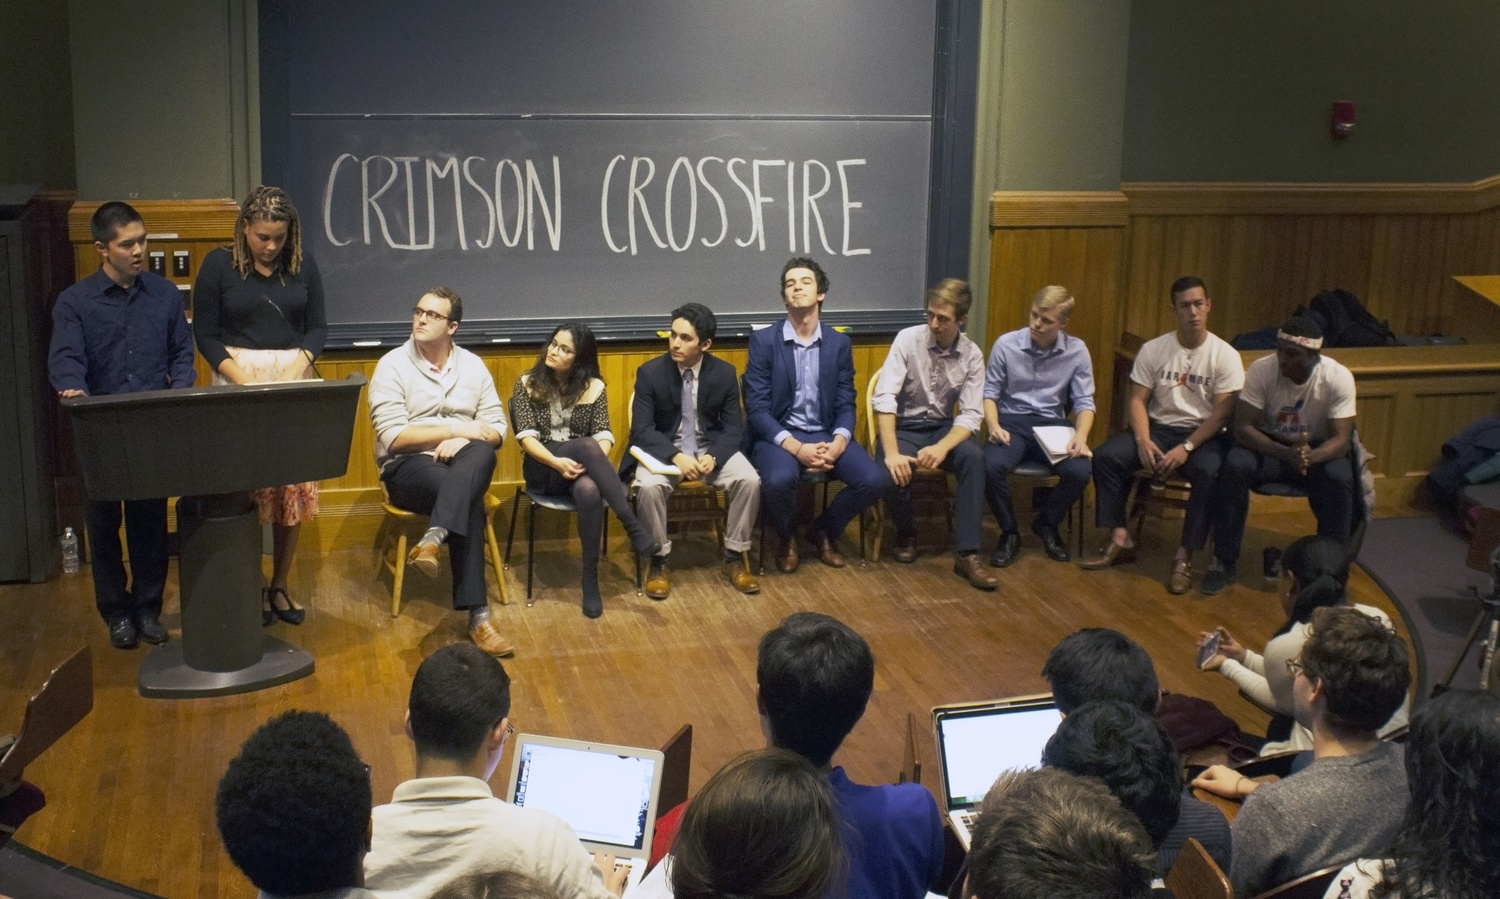 Crimson Crossfire Undergraduate Council Debate